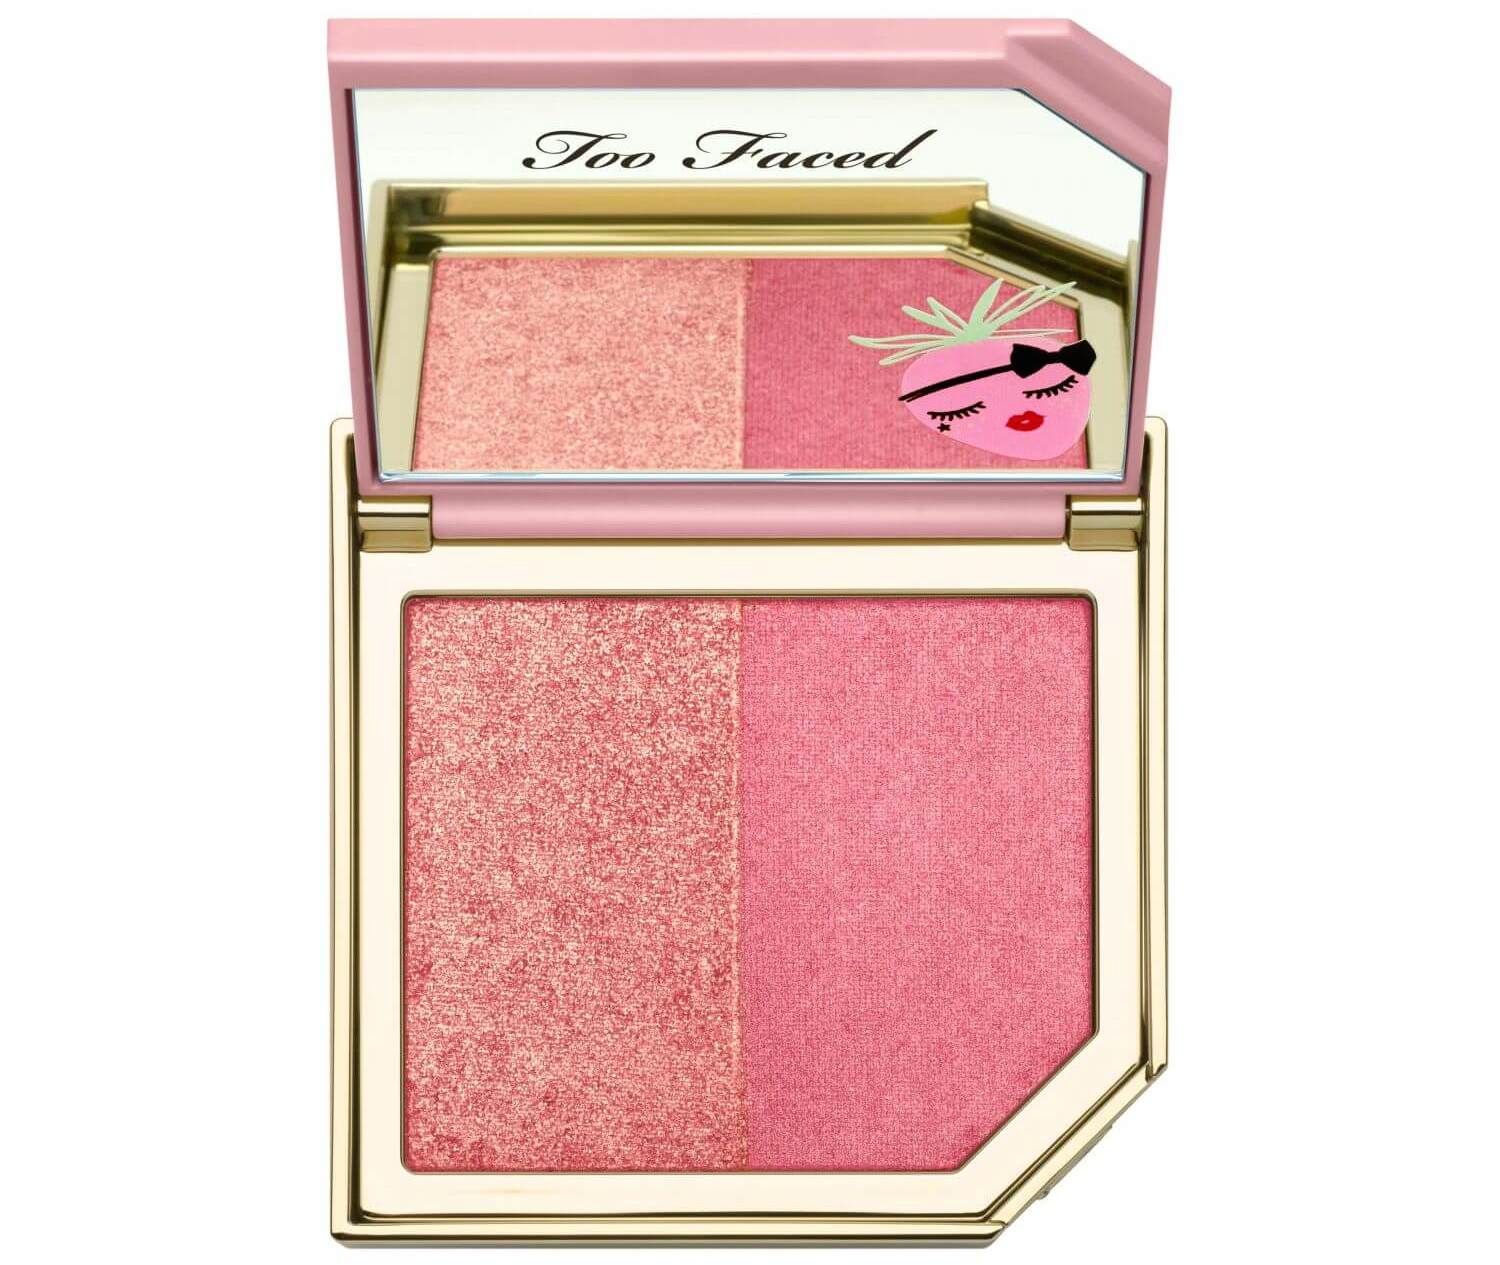 revue-collection-tutti-frutti-too-faced-blush-fruit-cocktail-strobeberry-sephora-france-makeupbyazadig-swatch-avis-prix-rose-berry